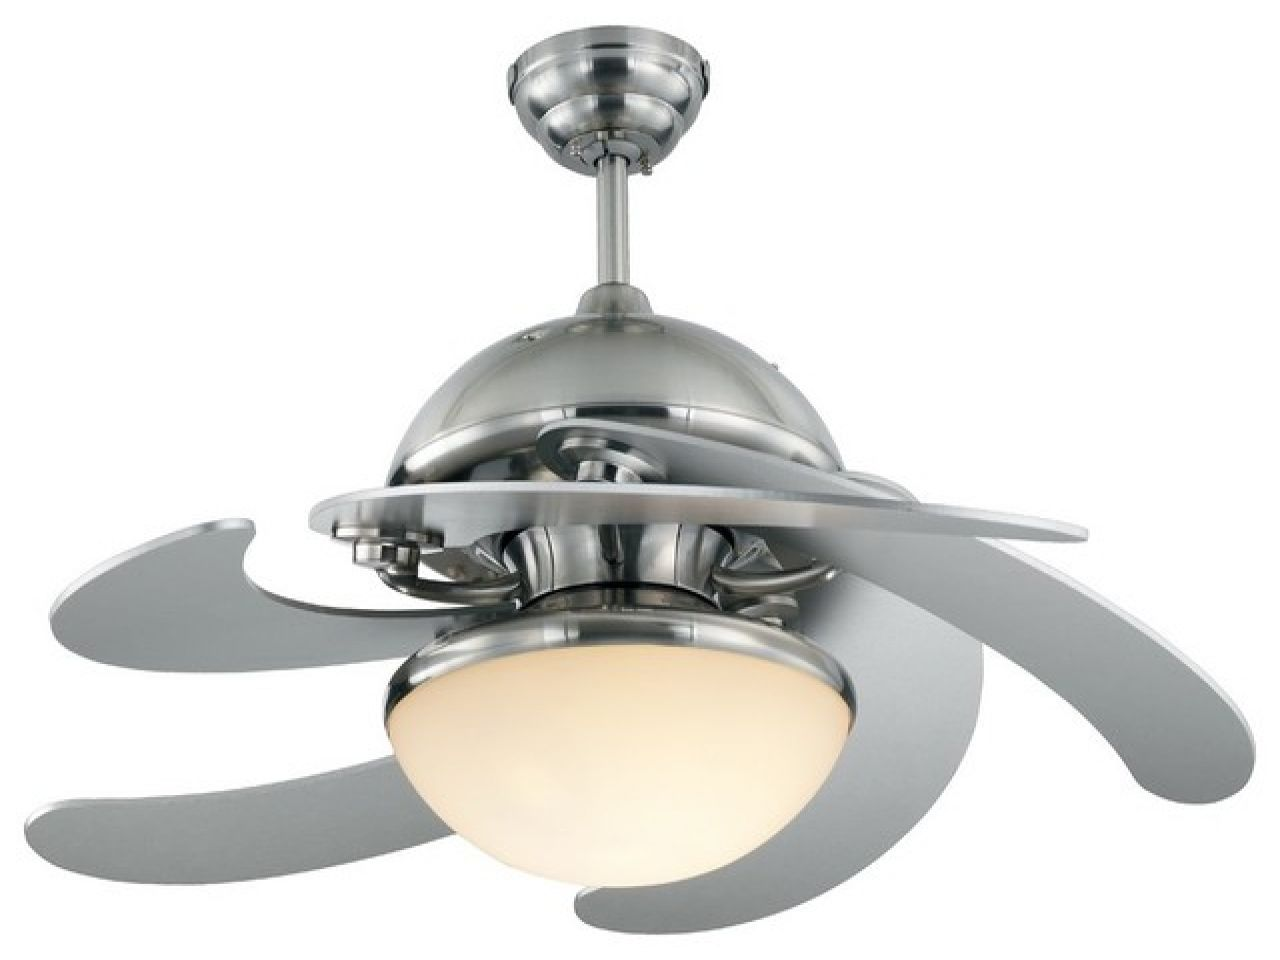 Pin by Deb Micallef on Kitchen | Contemporary ceiling fans ...